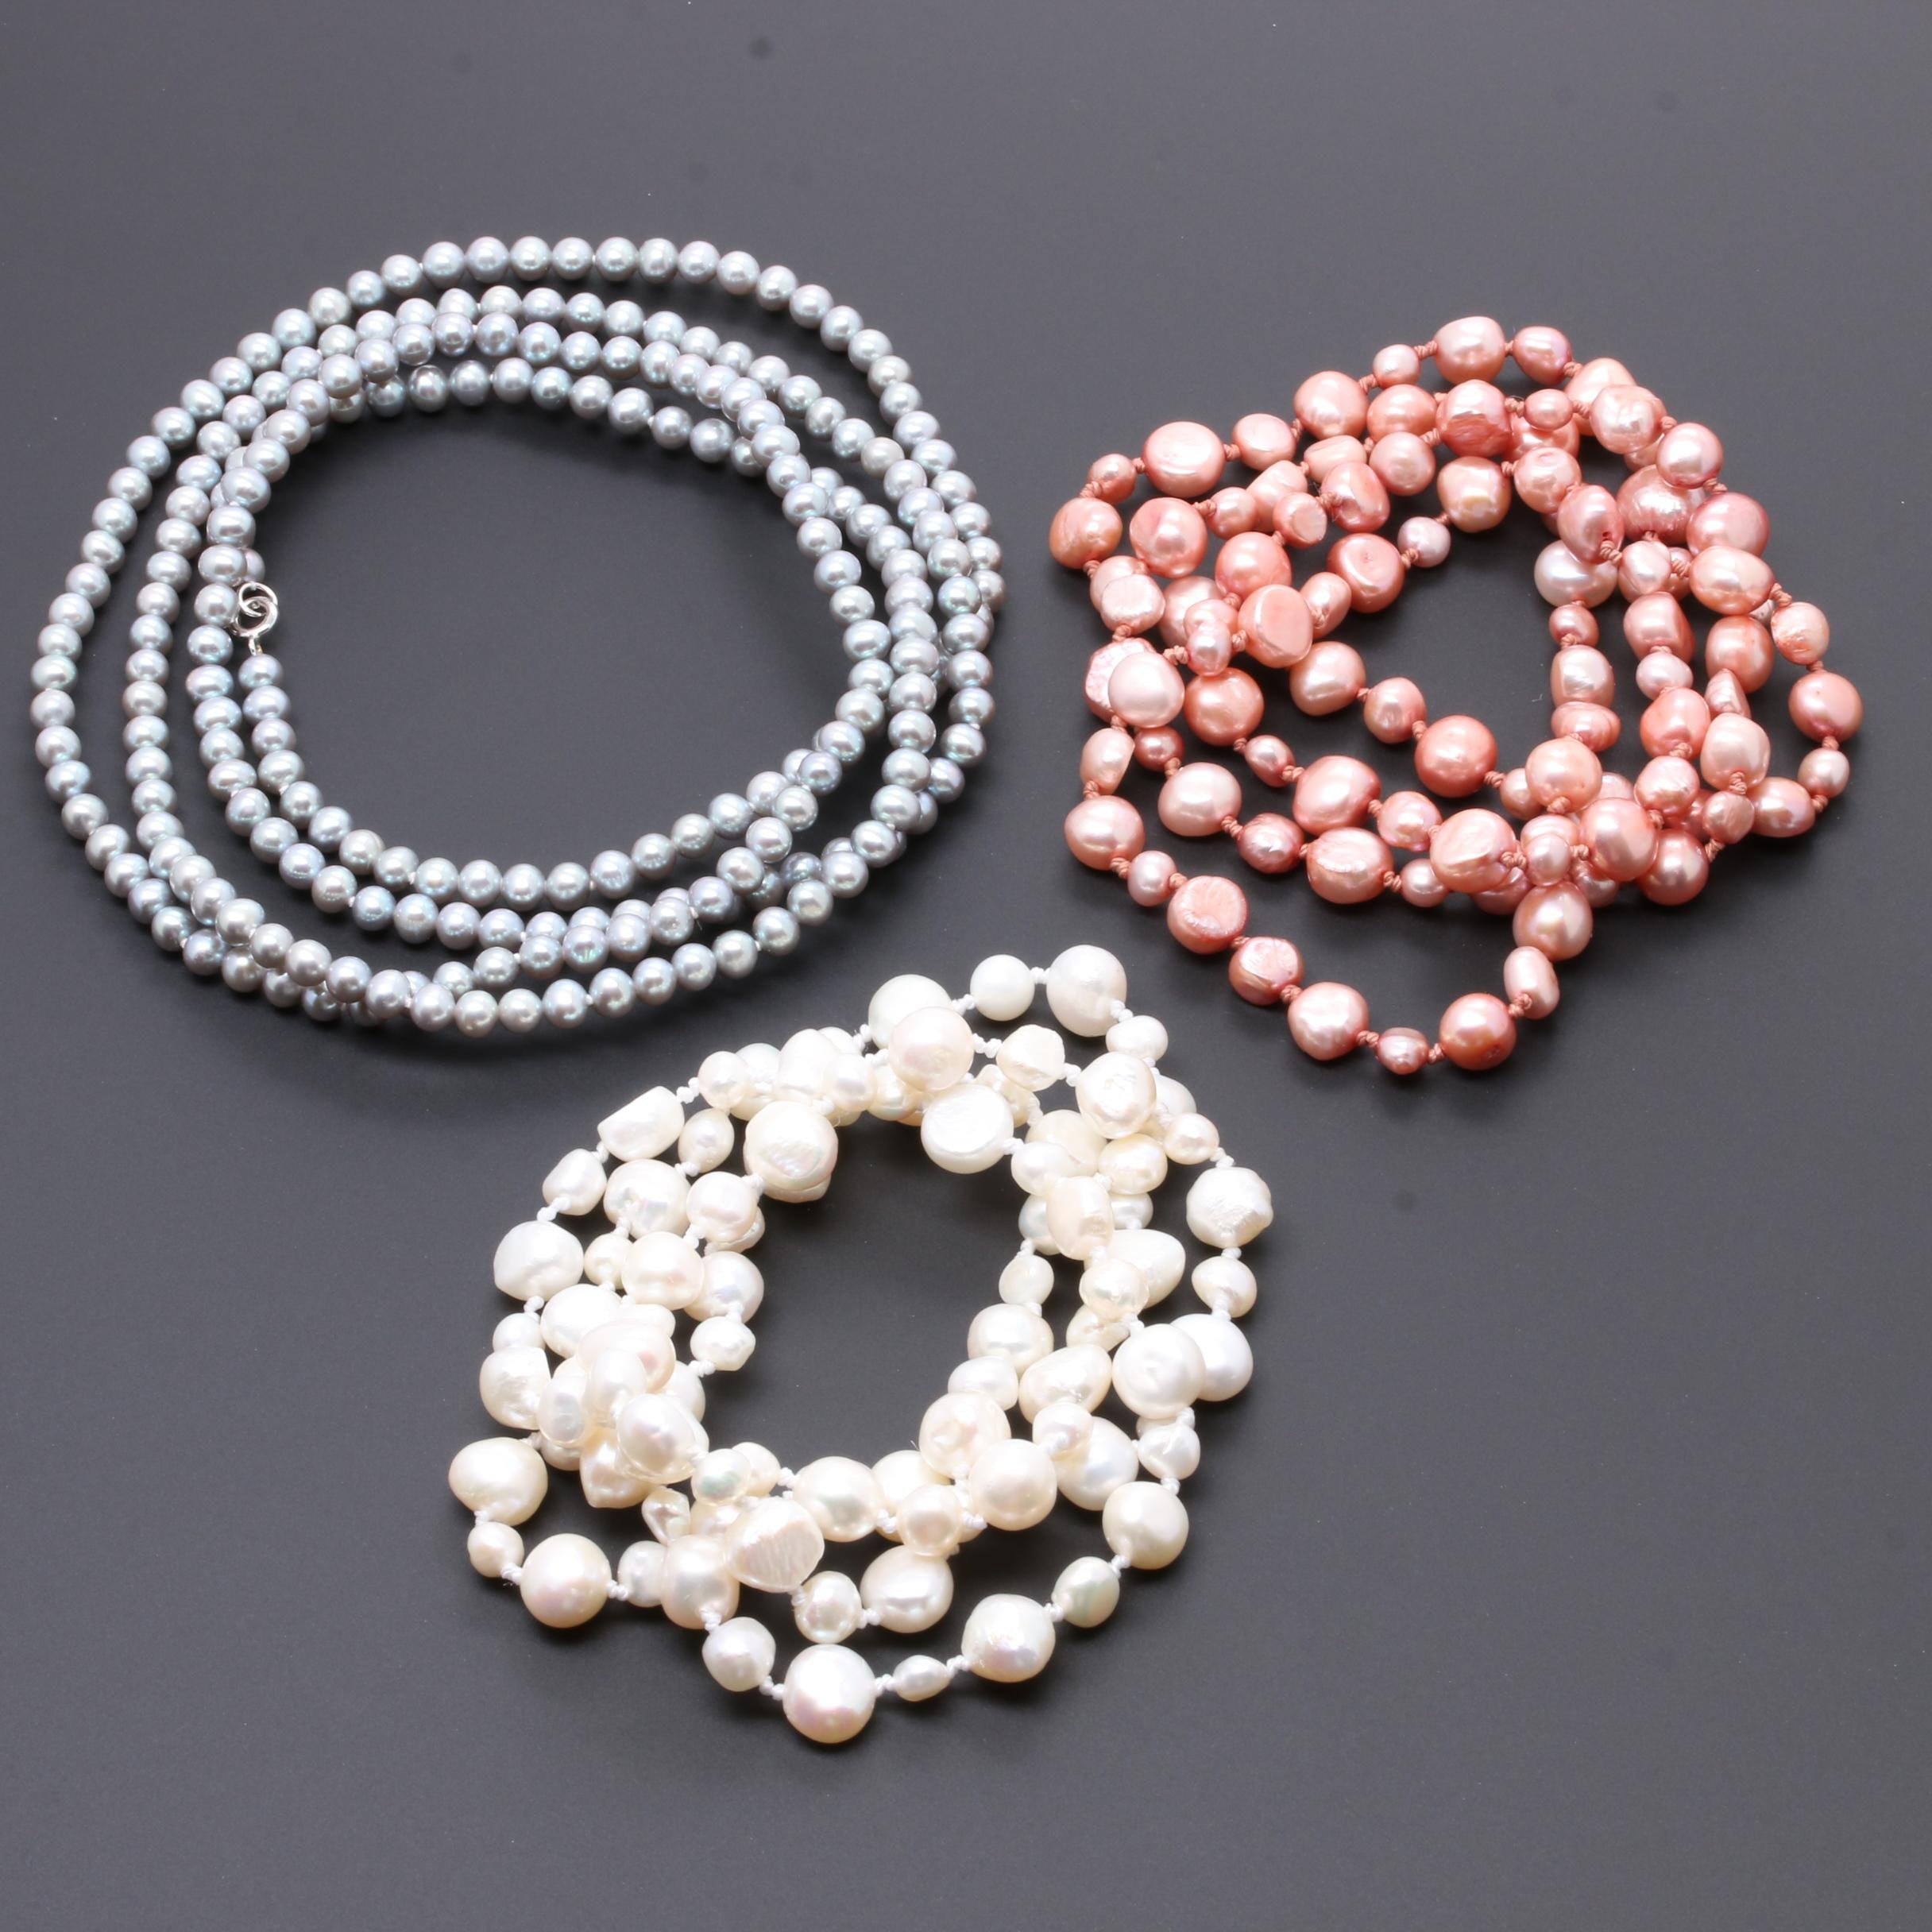 Sterling Silver Cultured Pearl Necklace Selection Including Grey and Pink Pearls